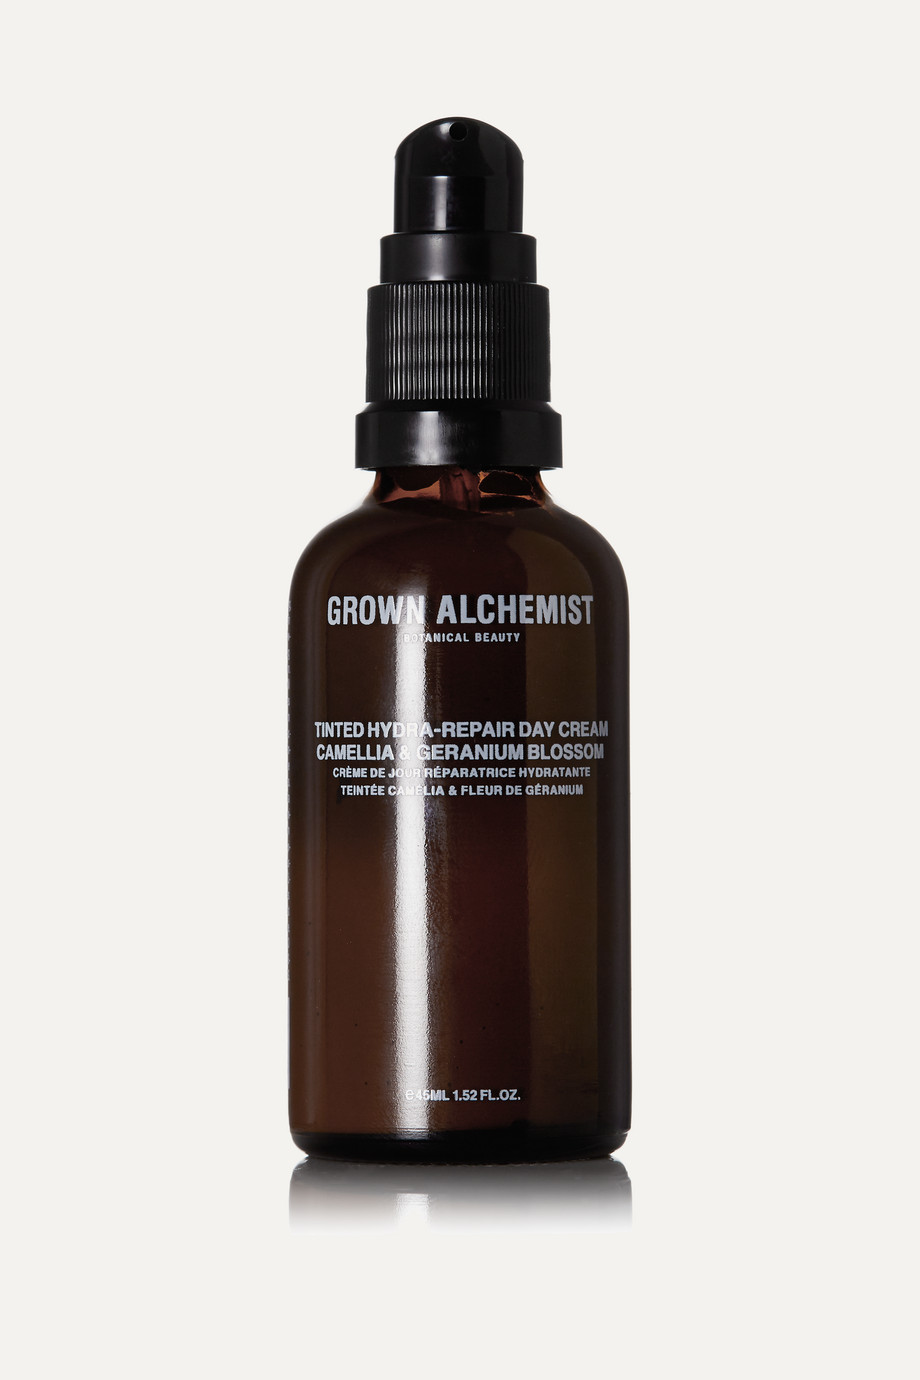 GROWN ALCHEMIST Tinted Hydra-Repair Day Cream, 45ml